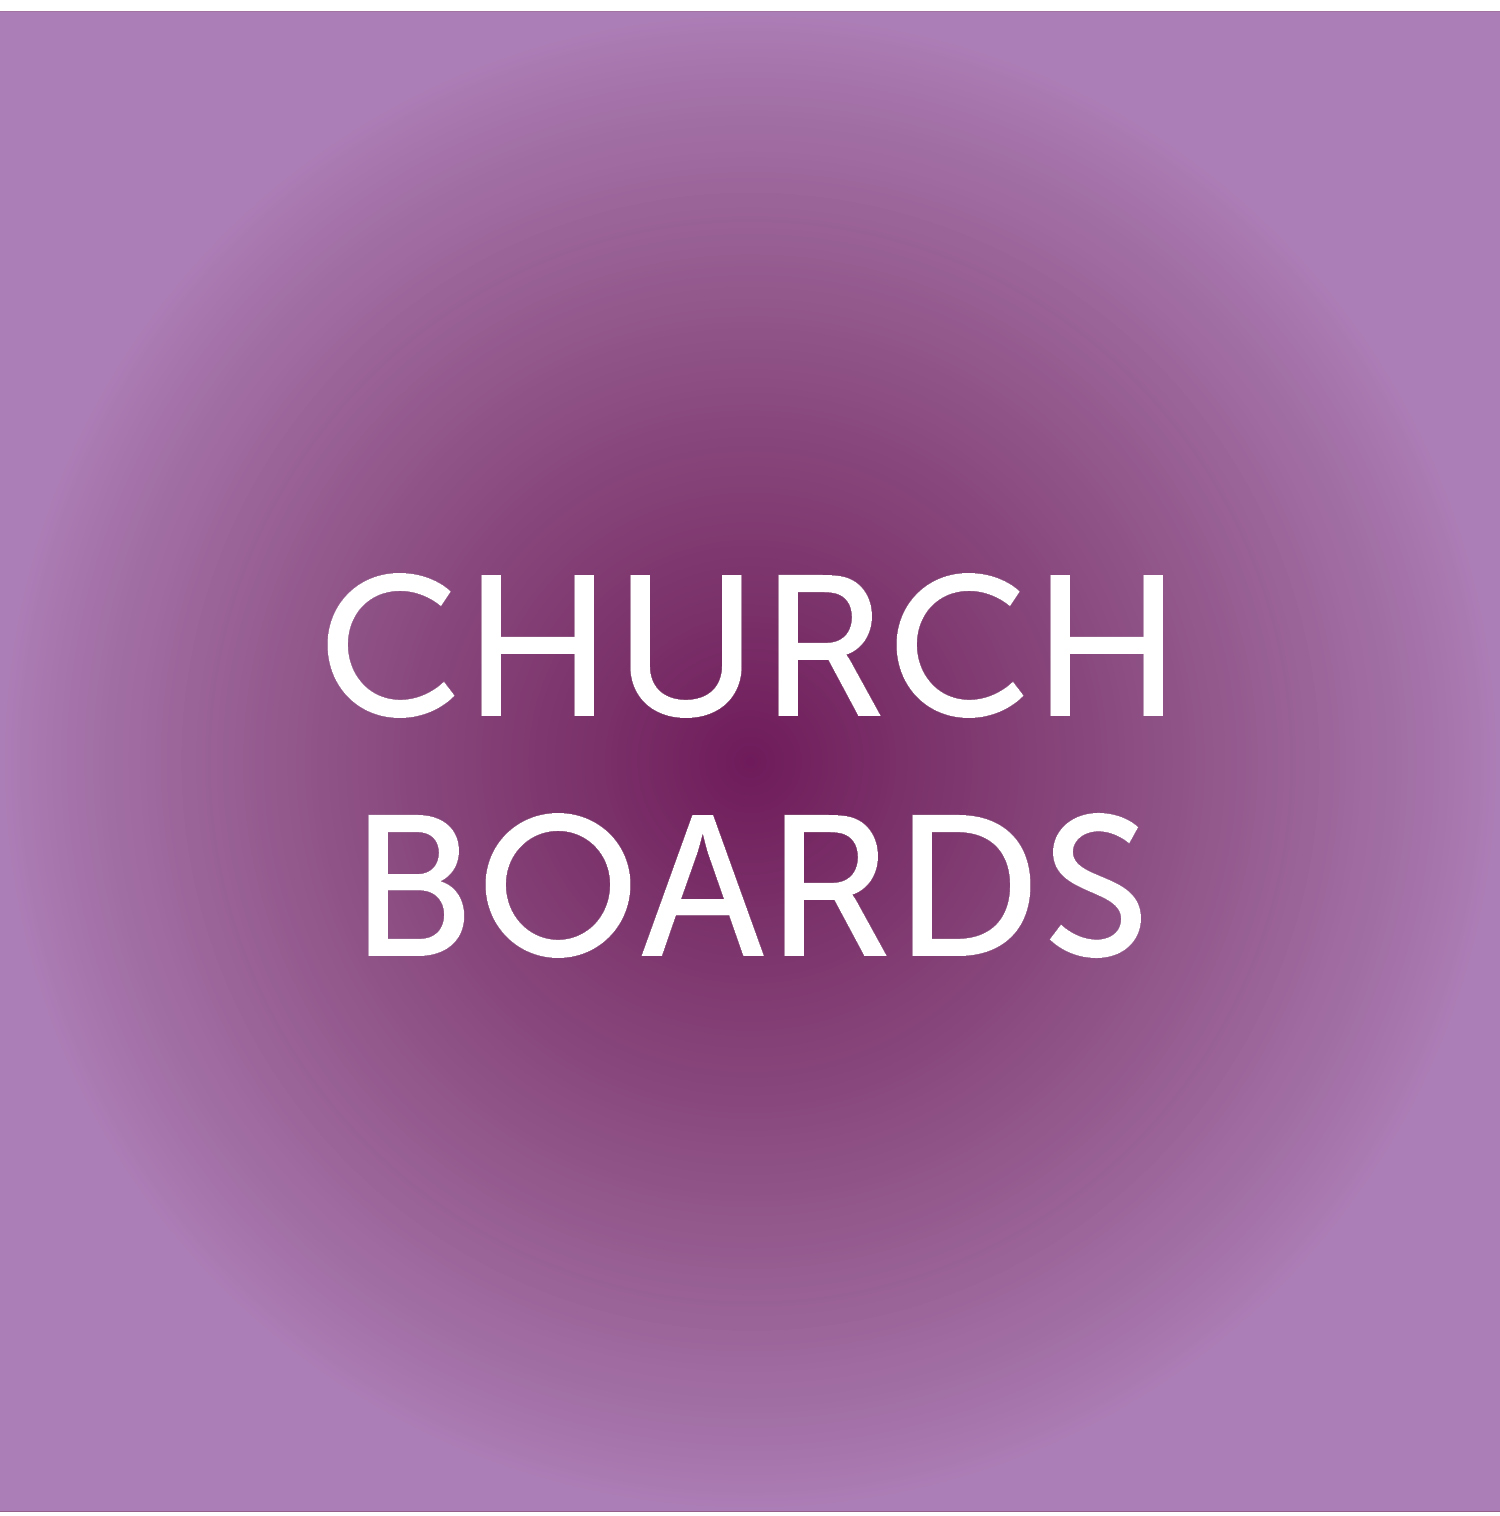 MINISTRY_CHURCH BOARDS.jpg